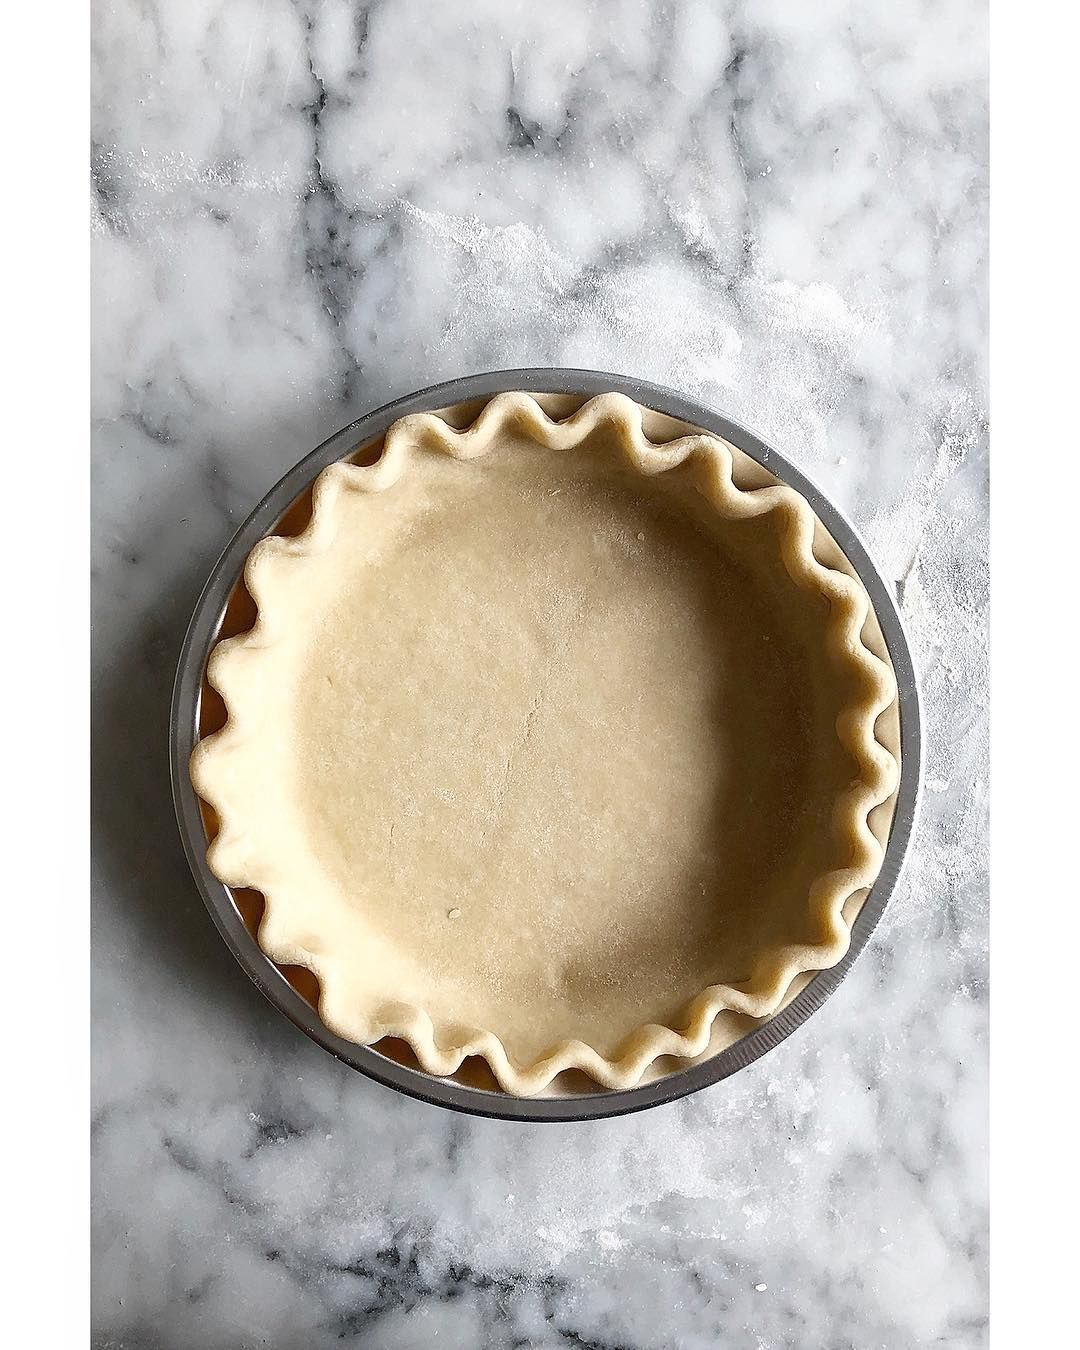 A Classic Crimp It Makes My Heart Pitter Patter We Made Almost 20 Batches Of Buttermilk Pie Dough Yesterday Amongst Other Th Food Pie Dough Homemade Recipes